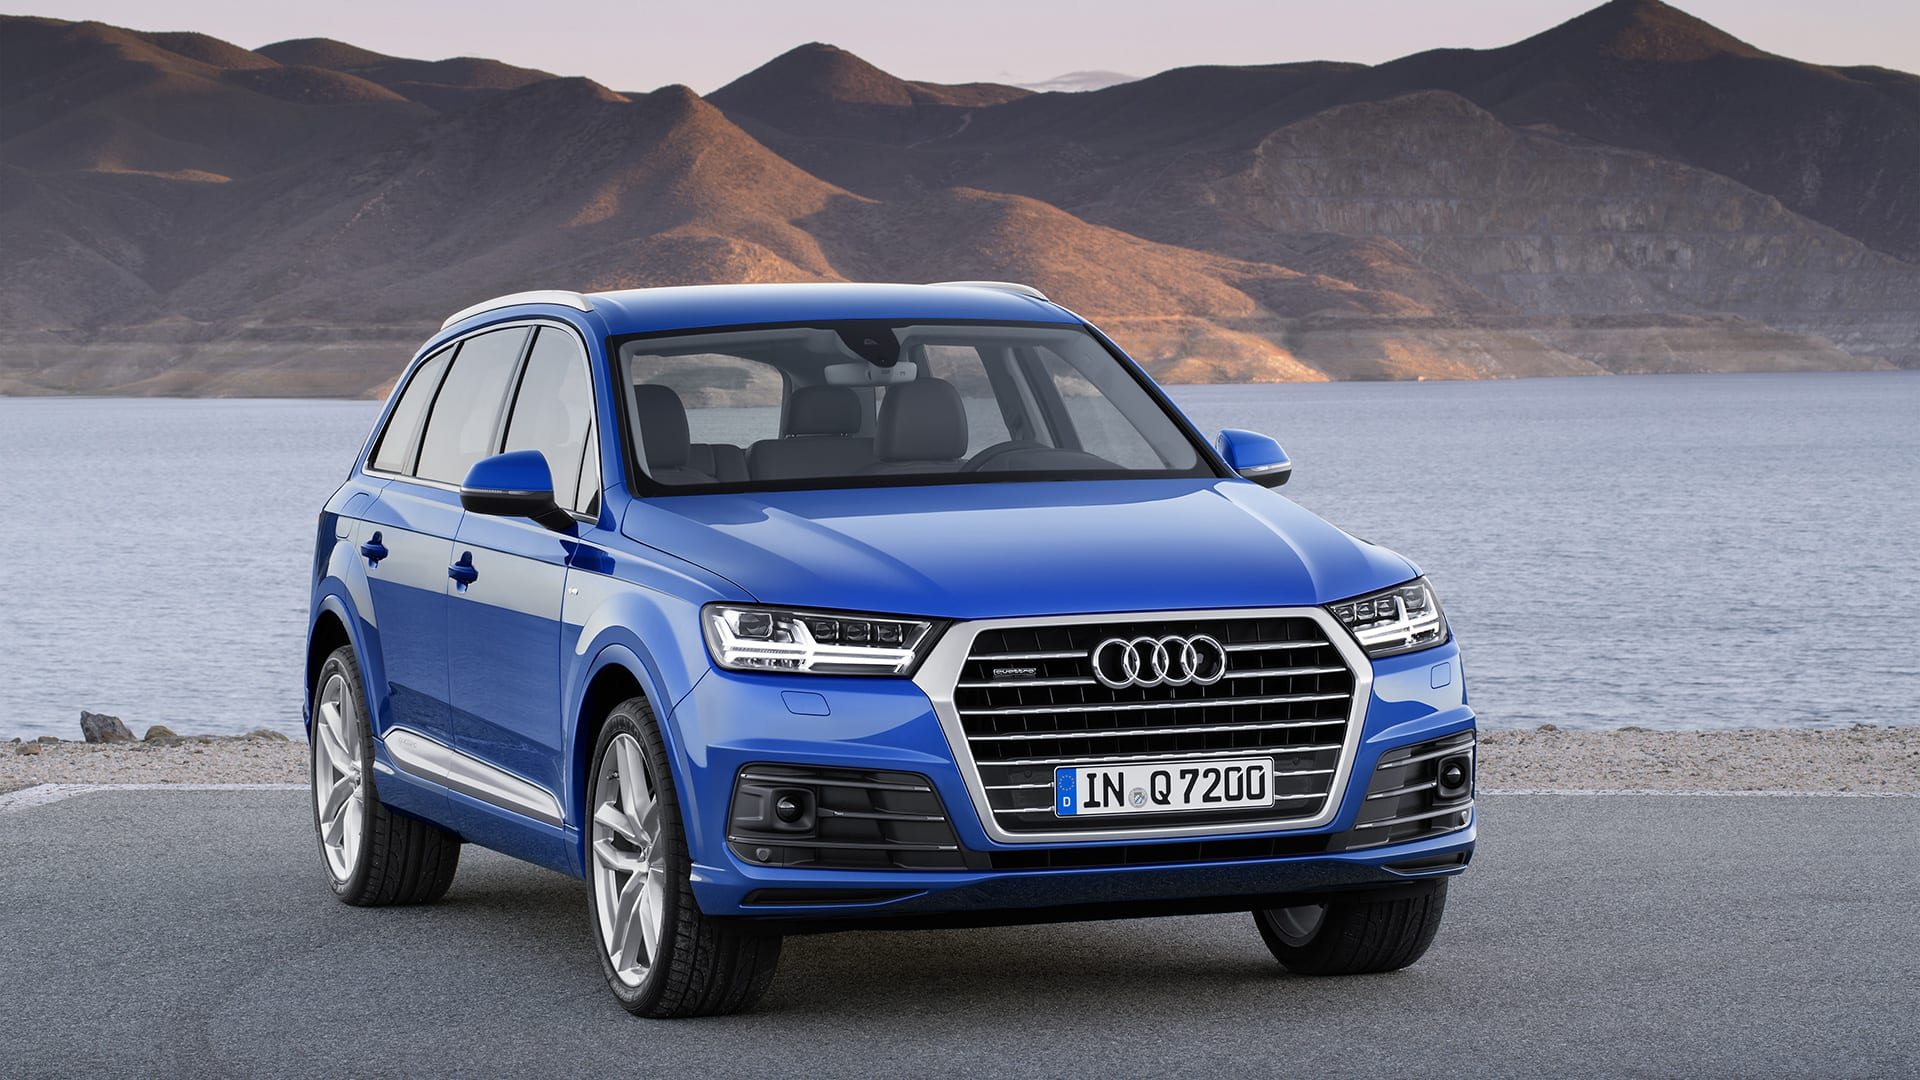 Audi q7 wallpaper download